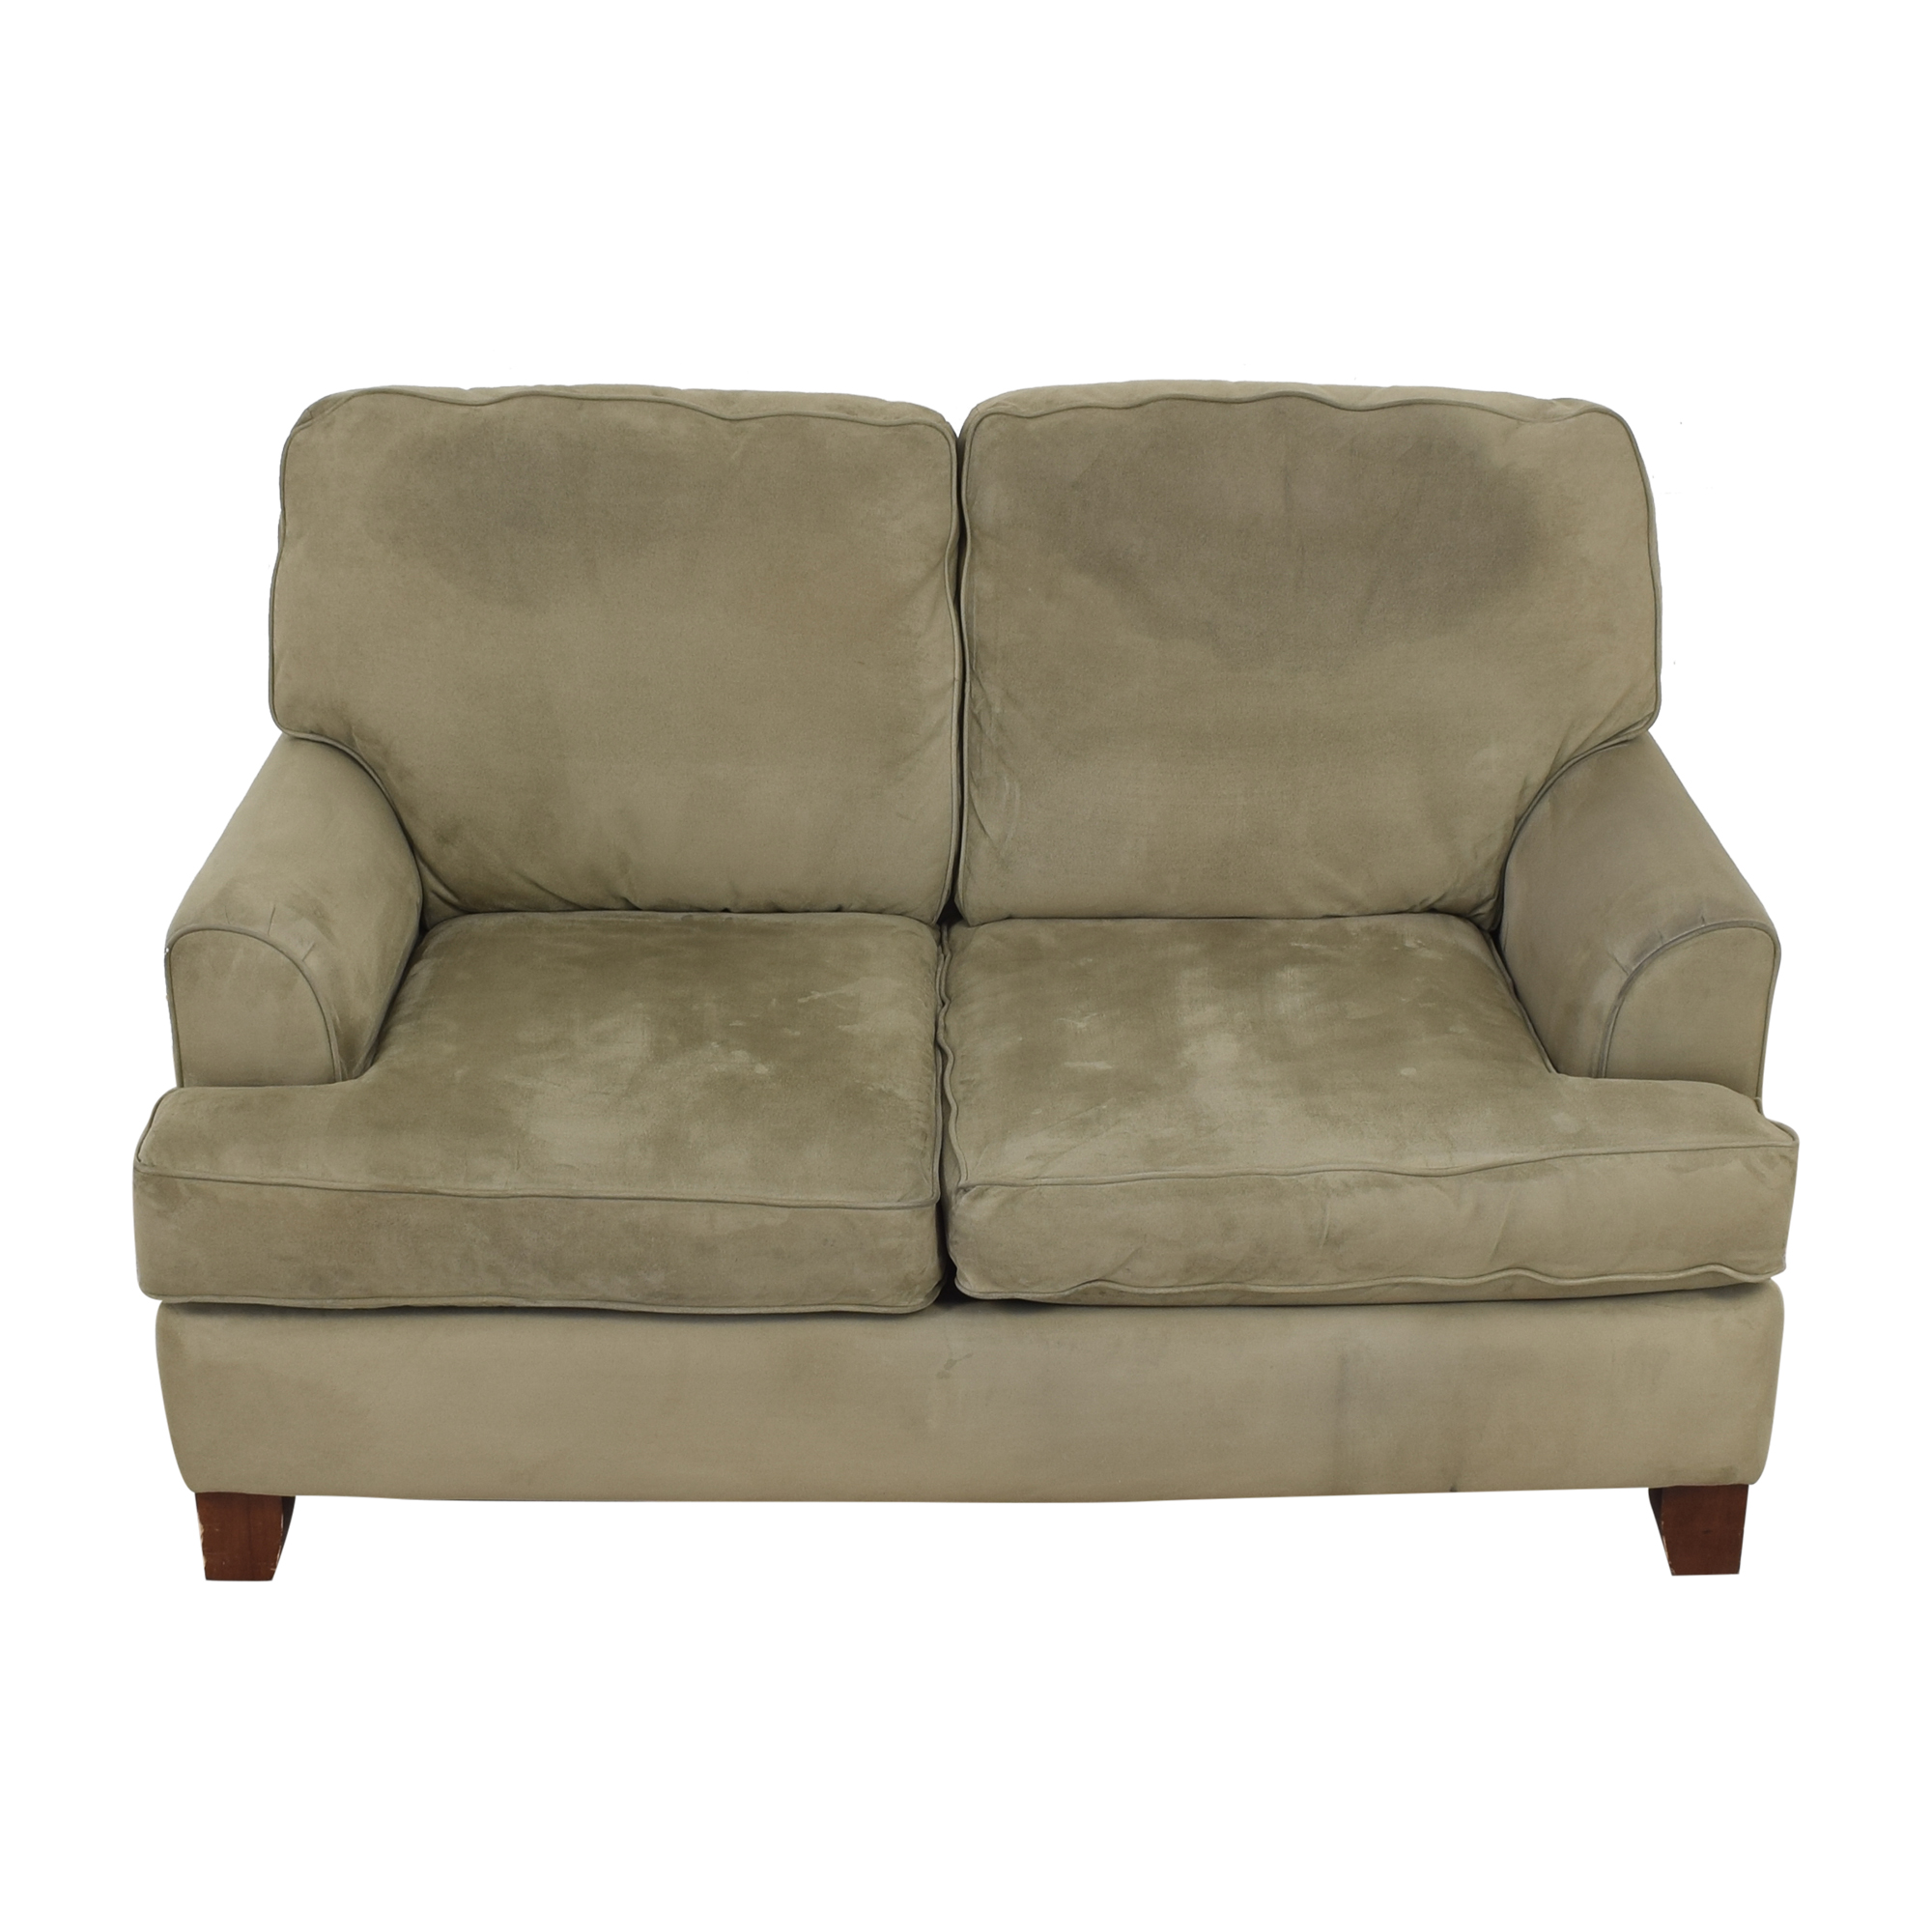 JC Penney JC Penney Two Cushion Loveseat coupon